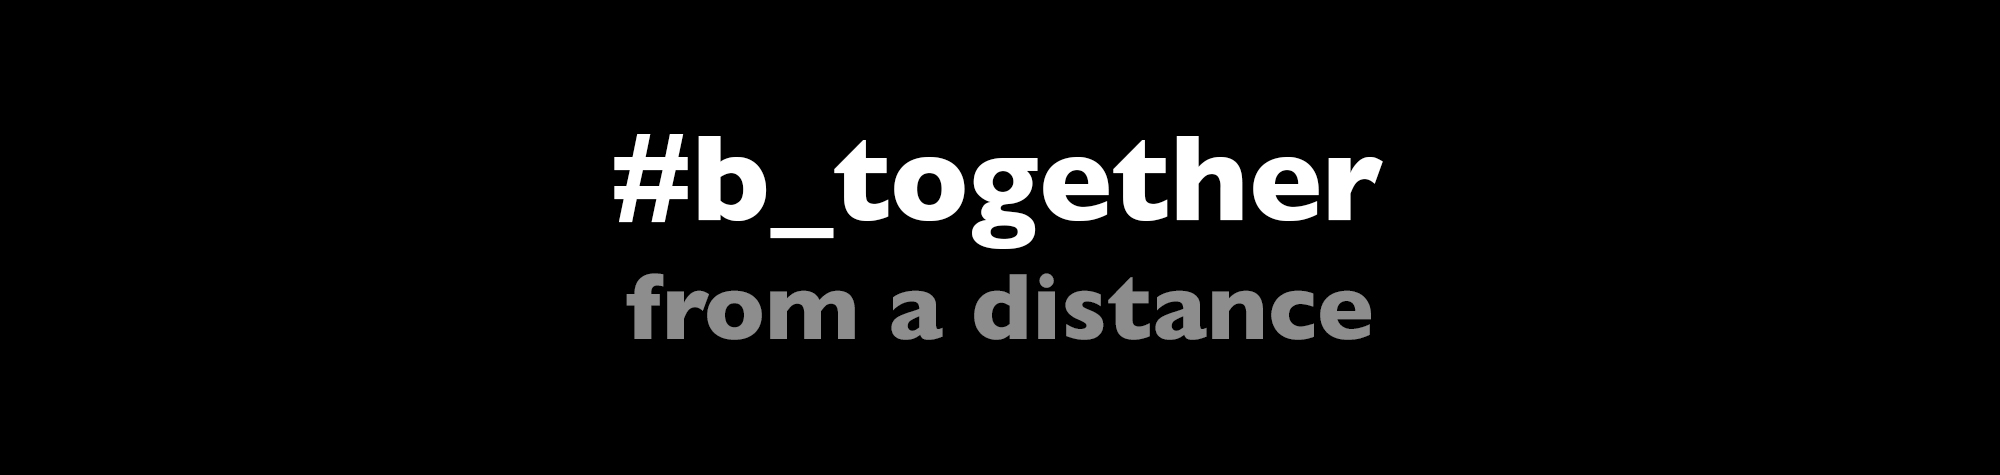 #b_together from a distance